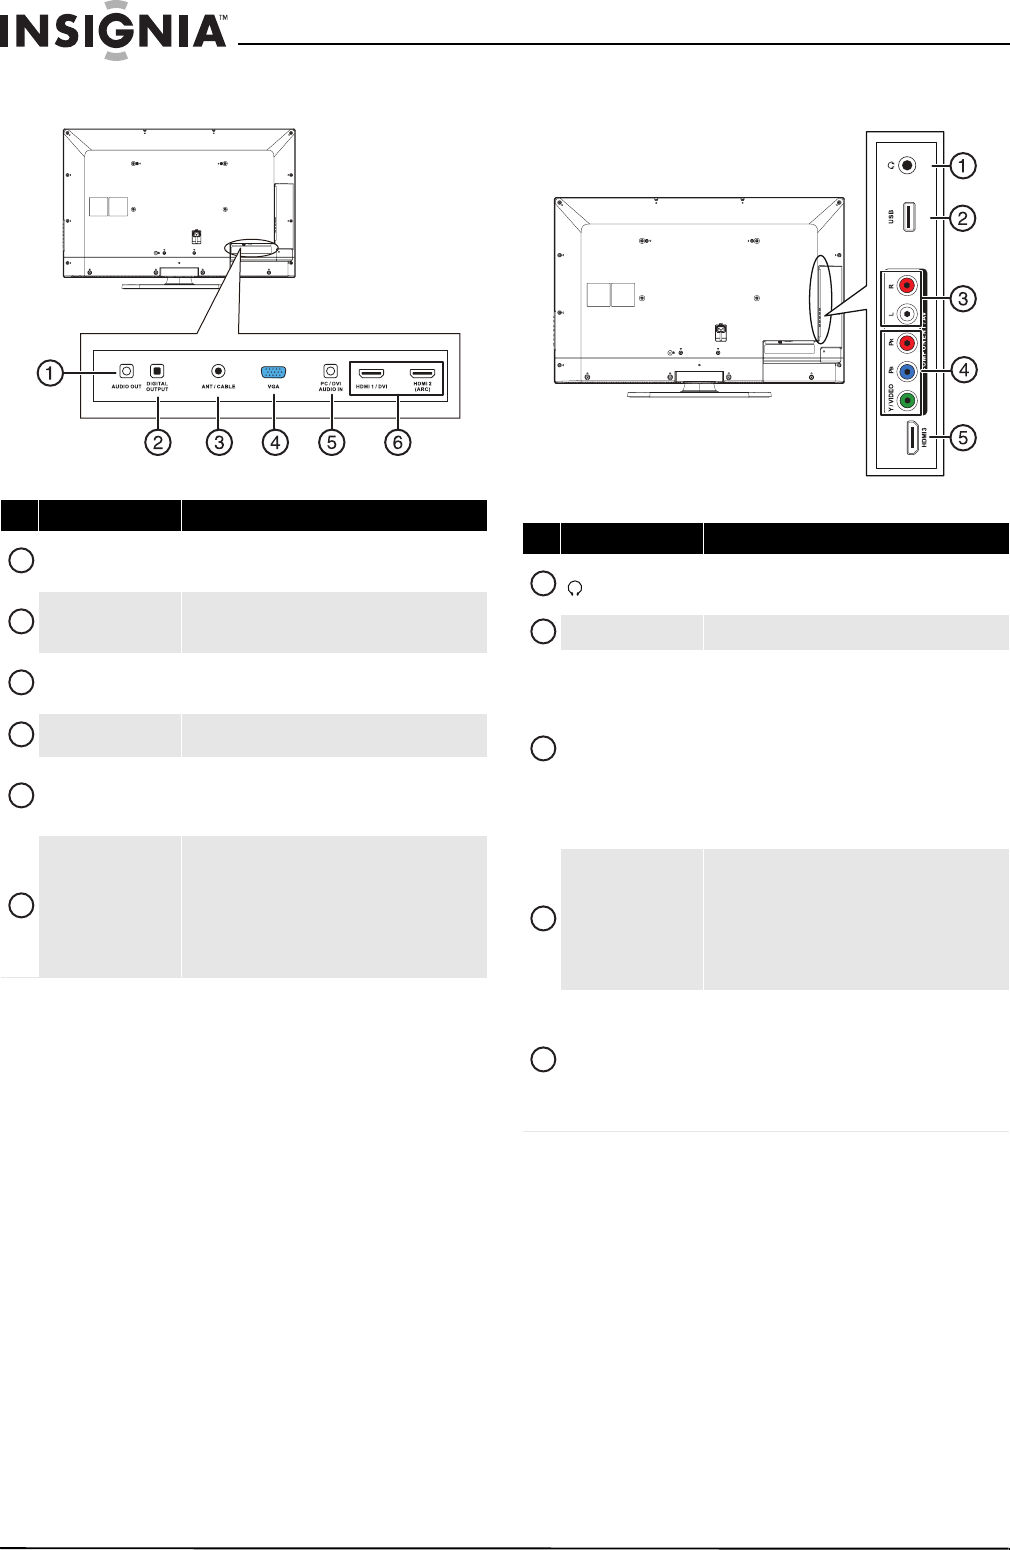 53a22e6a-3bf5-4e0d-9bc9-e8085a57461c-bgc Schematic Diagram Keyboard on for ergodox, circuits for usb wired backlit mechanical, diagram for,